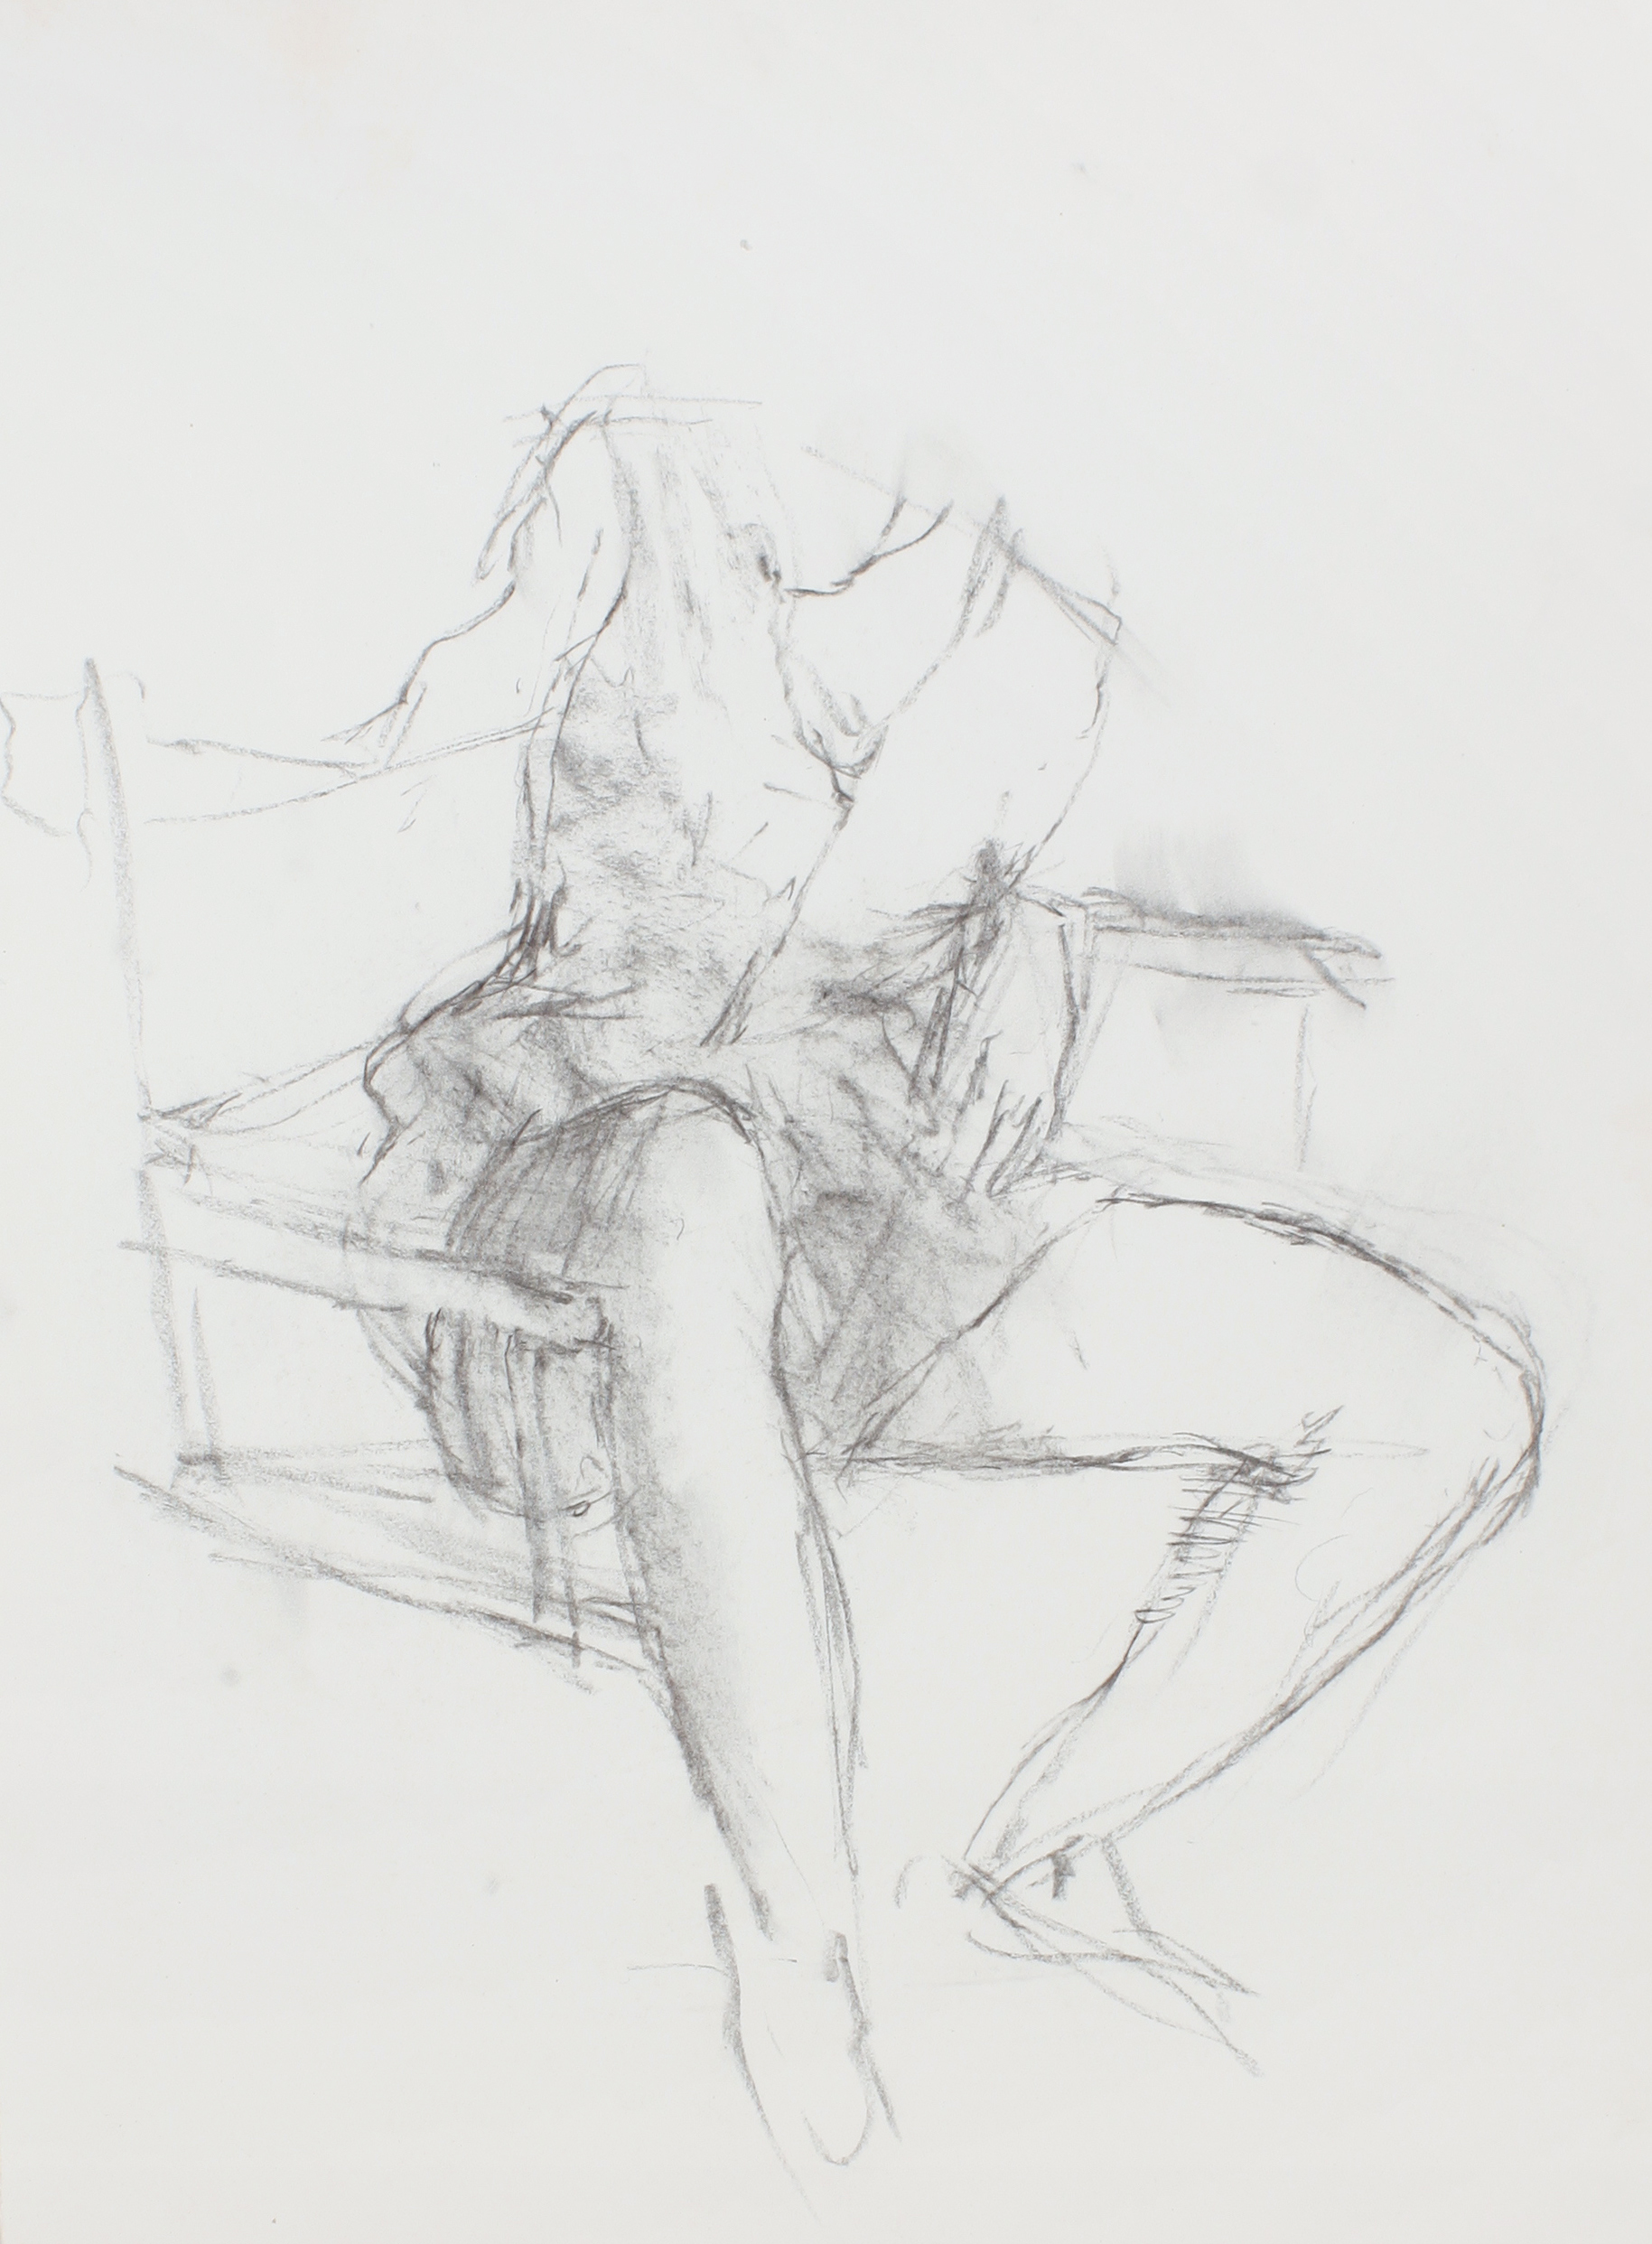 1989_Study_for_Seated_Girl_(Sophie)_pencil_on_paper_15x11in_WPF617.jpg